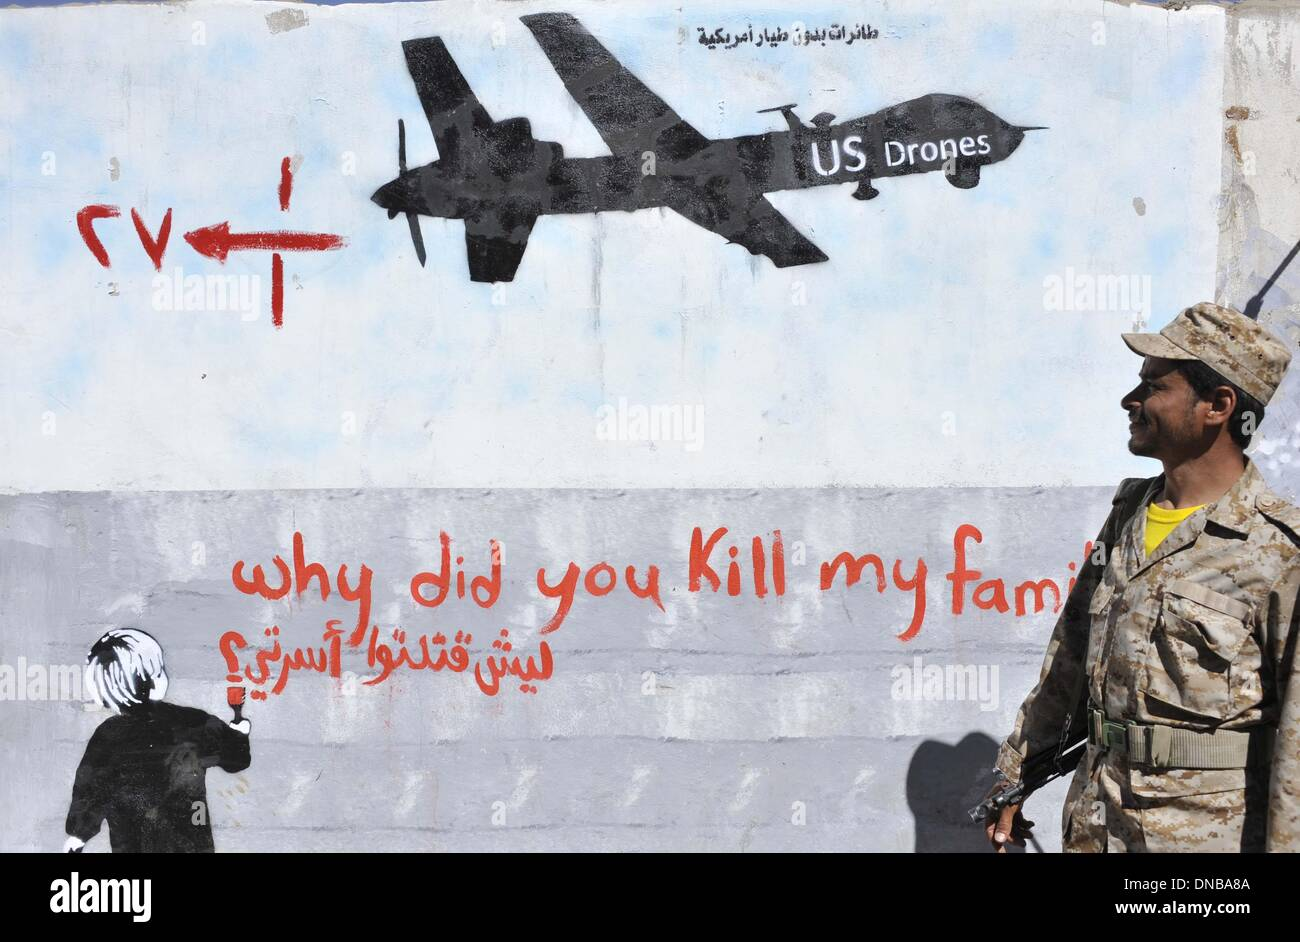 Sanaa, Yemen. 21st Dec 2013. A Yemeni soldier looks at the graffiti of U.S. drone strike painted on a wall as a protest against the drone strikes, in Sanaa, Yemen, on Dec. 21, 2013. The Yemeni parliament on Sunday approved a ban on U.S. drones in the country after dozens of civilians were killed by the unmanned aircraft, the official Saba news agency reported. The decision was made after the U.S. drone mistakenly hit a wedding convey on Thursday in Yemen's southeastern province of al- Bayda, killing up to 17 Yemeni civilians and wounding about 21 others. Credit:  Xinhua/Alamy Live News Stock Photo